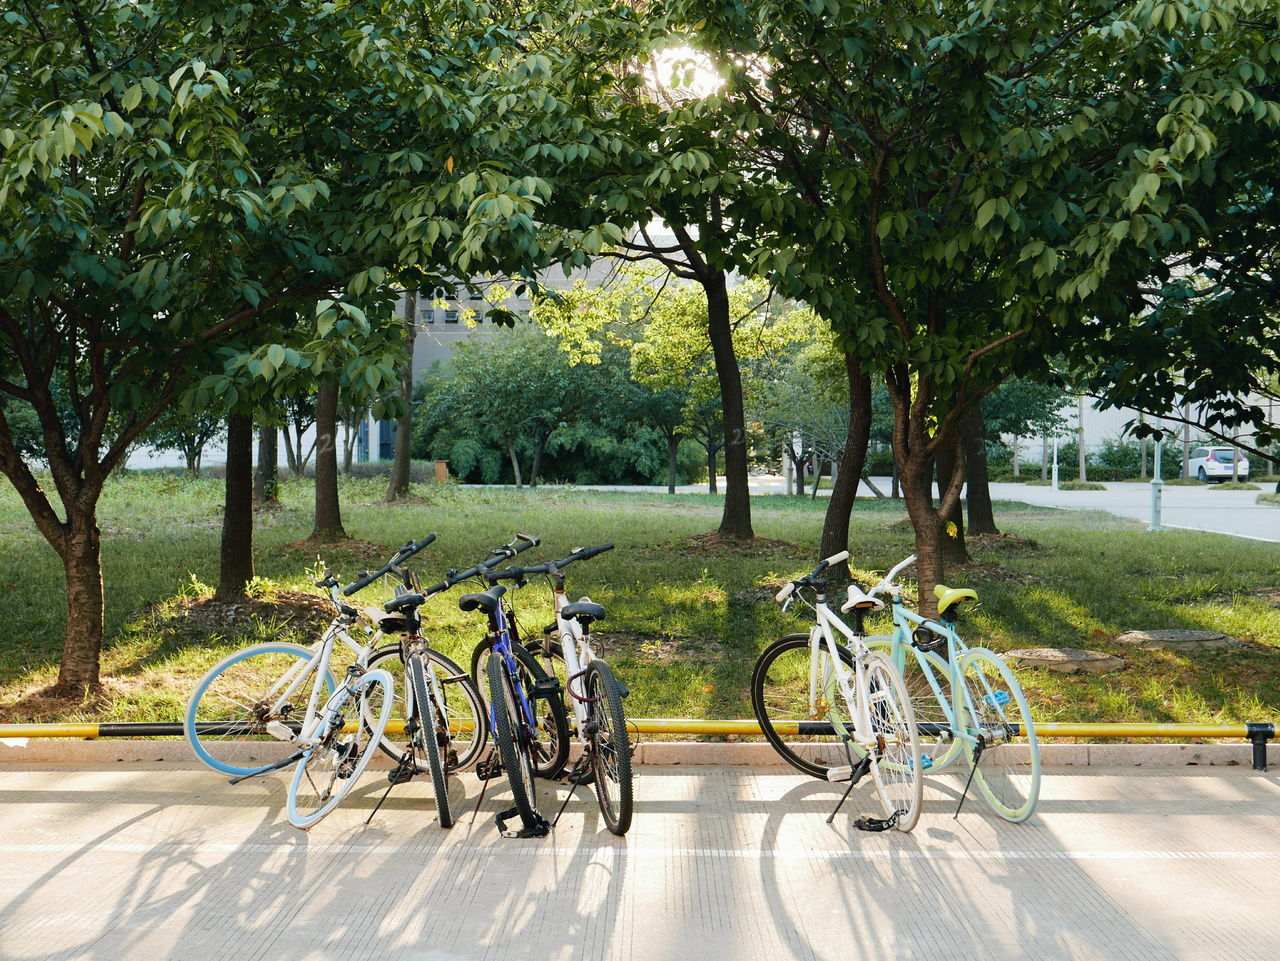 tree, bicycle, transportation, day, nature, growth, outdoors, bicycle rack, park - man made space, no people, tranquility, sunlight, tranquil scene, green color, beauty in nature, scenics, landscape, grass, sky